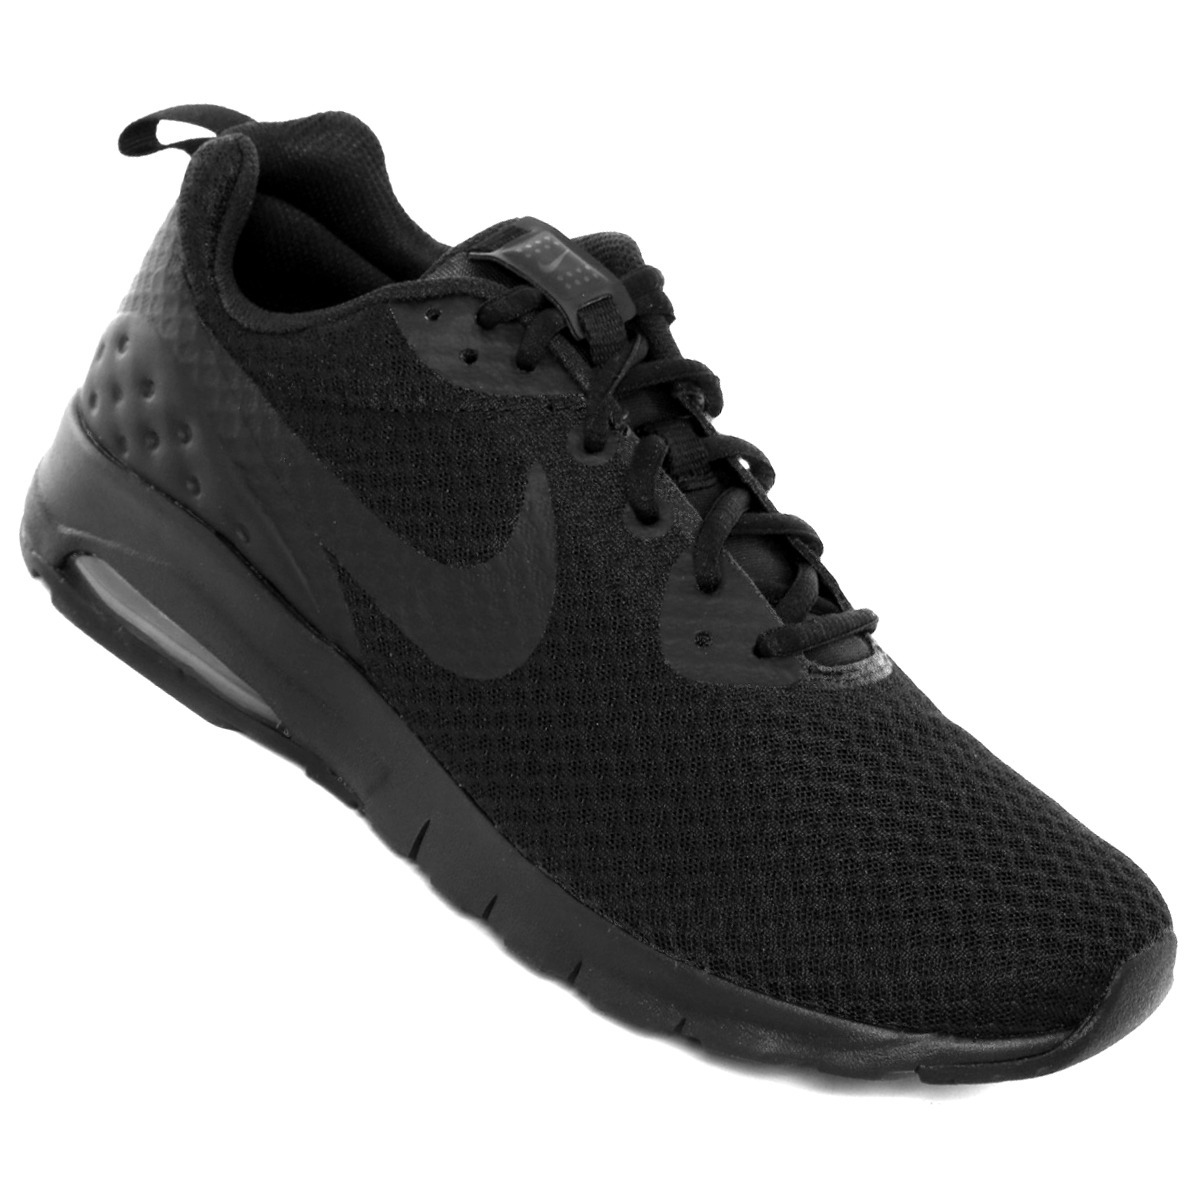 new product 2f780 0c3e4 tenis nike air max motion lw para hombre color negro 2442945